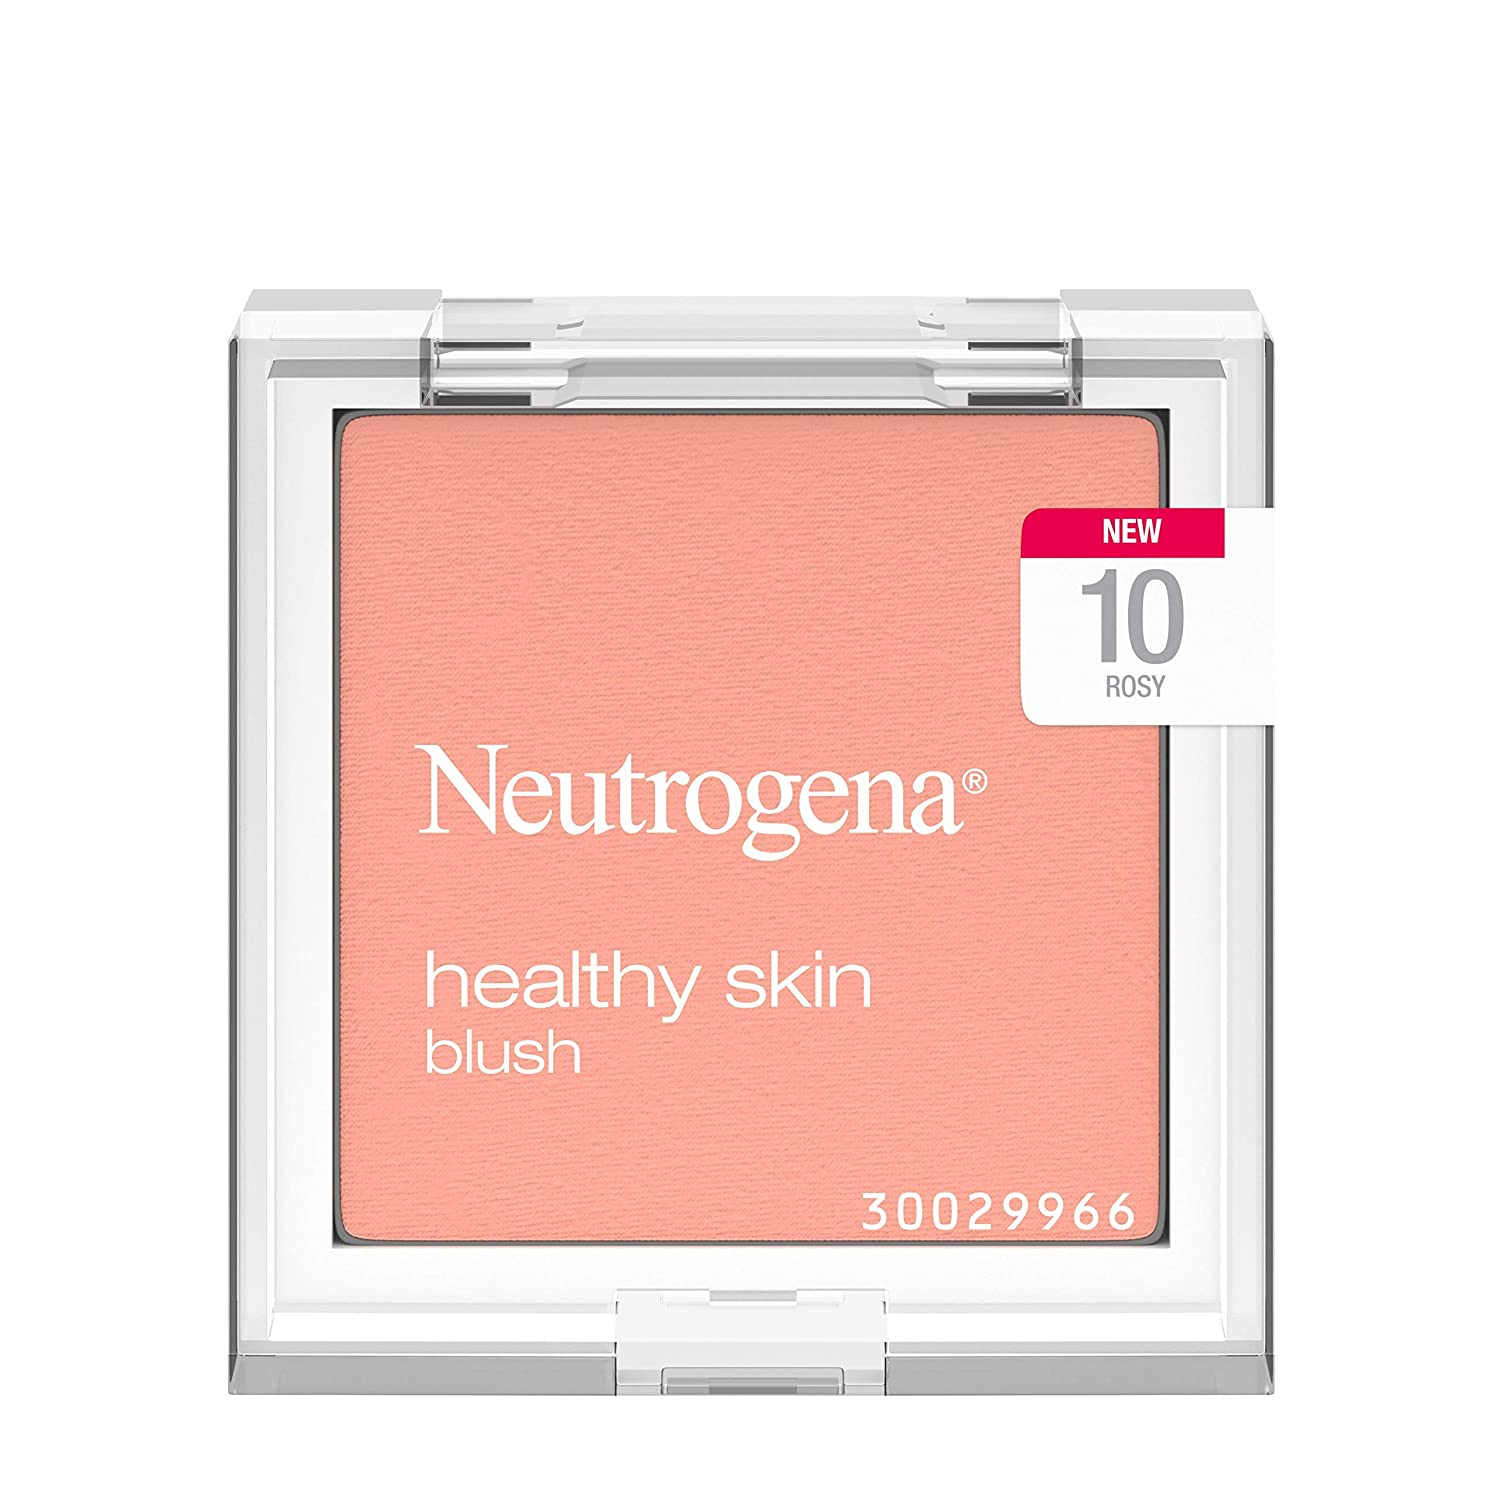 Neutrogena Healthy Skin Powder Blush Makeup Palette, Illuminating Pigmented Blush with Vitamin C and Botanical Conditioners for Blendable, Buildable Application, 10 Rosy,.19 oz : Beauty & Personal Care